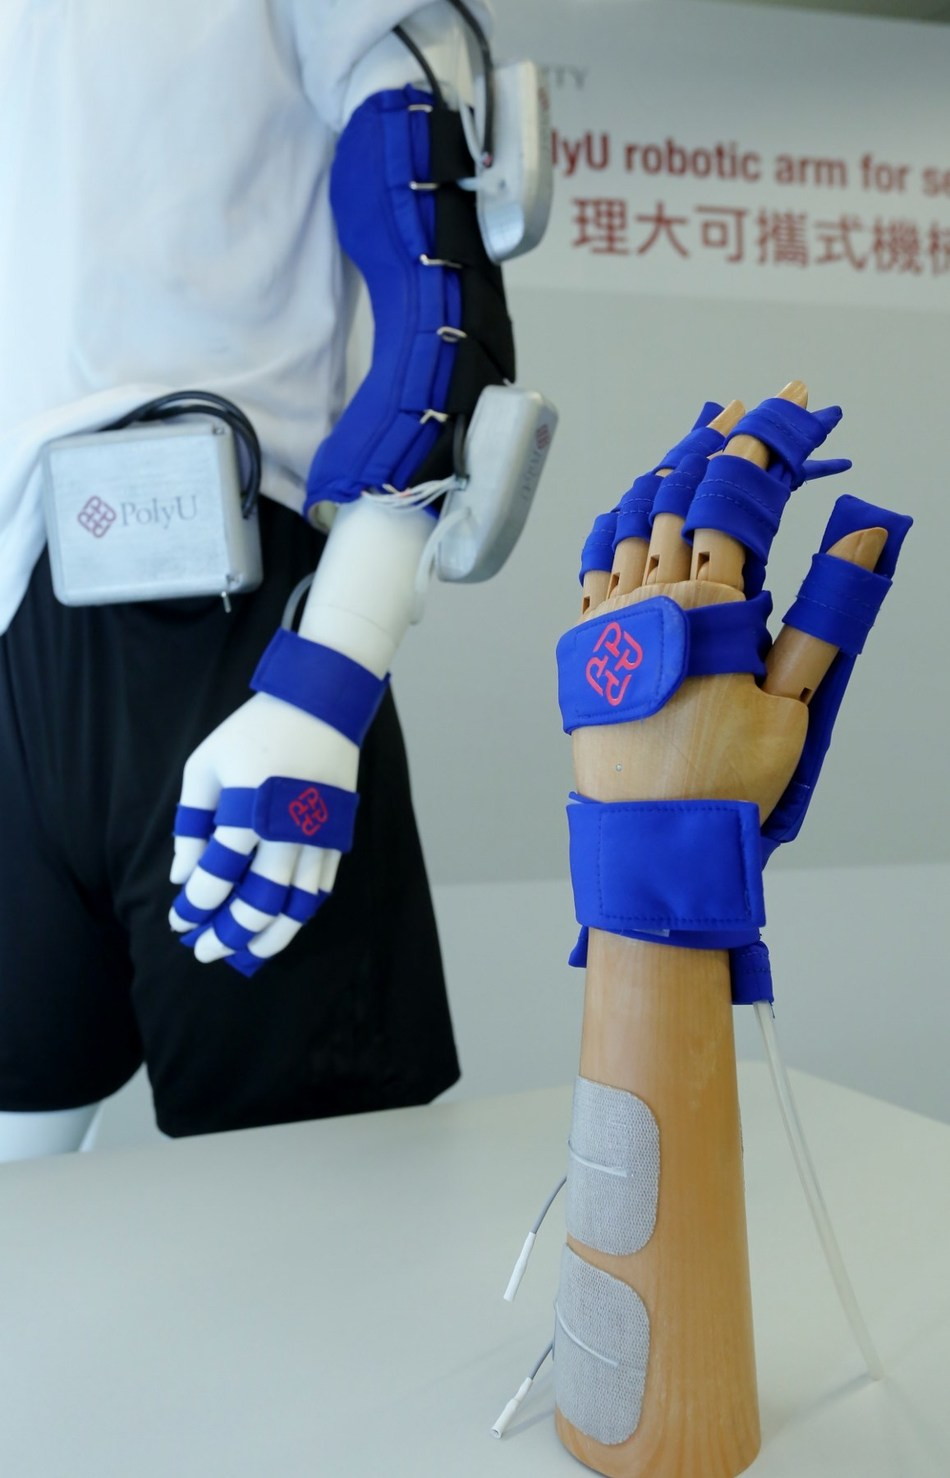 The PolyU-developed robotic arm is the first-of-its-kind integration of exo-skeleton, soft robot and exo-nerve stimulation technologies. It is light in weight, compact in size, fast in response and demands minimal power supply, thus suitable for use in both indoor and outdoor environment. (PRNewsfoto/PolyU)